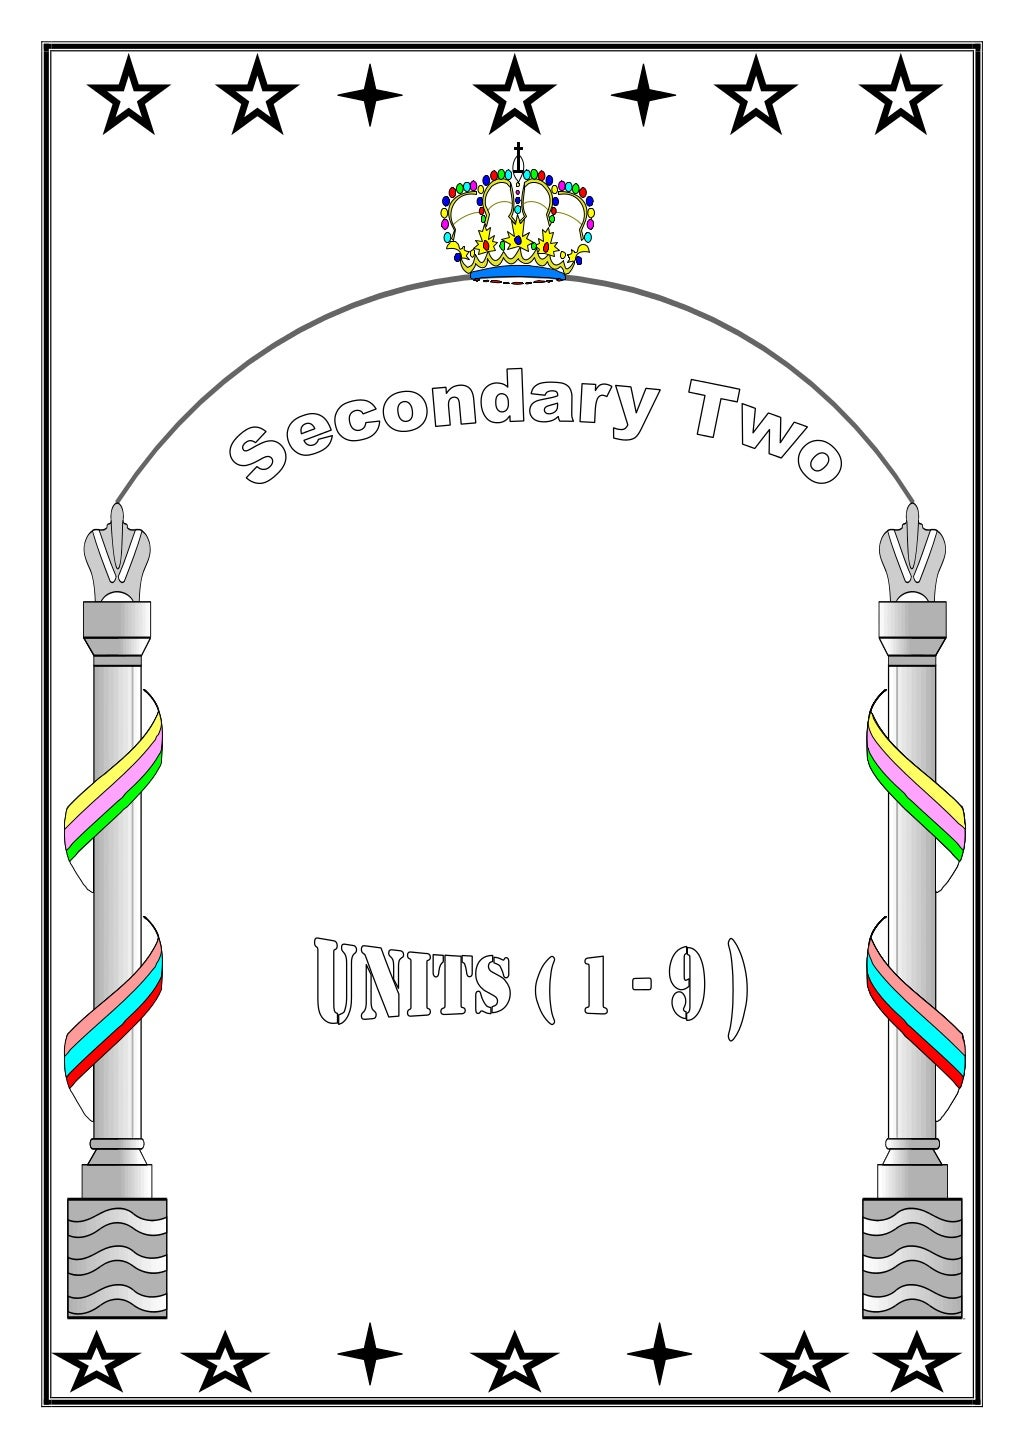 Secondary Two2 Contents No Title Page 1 Unit 1 4 - 25 Vocabulary 4 - 5 Language Notes 5 - 8 Communication Skills 9 Exercis...